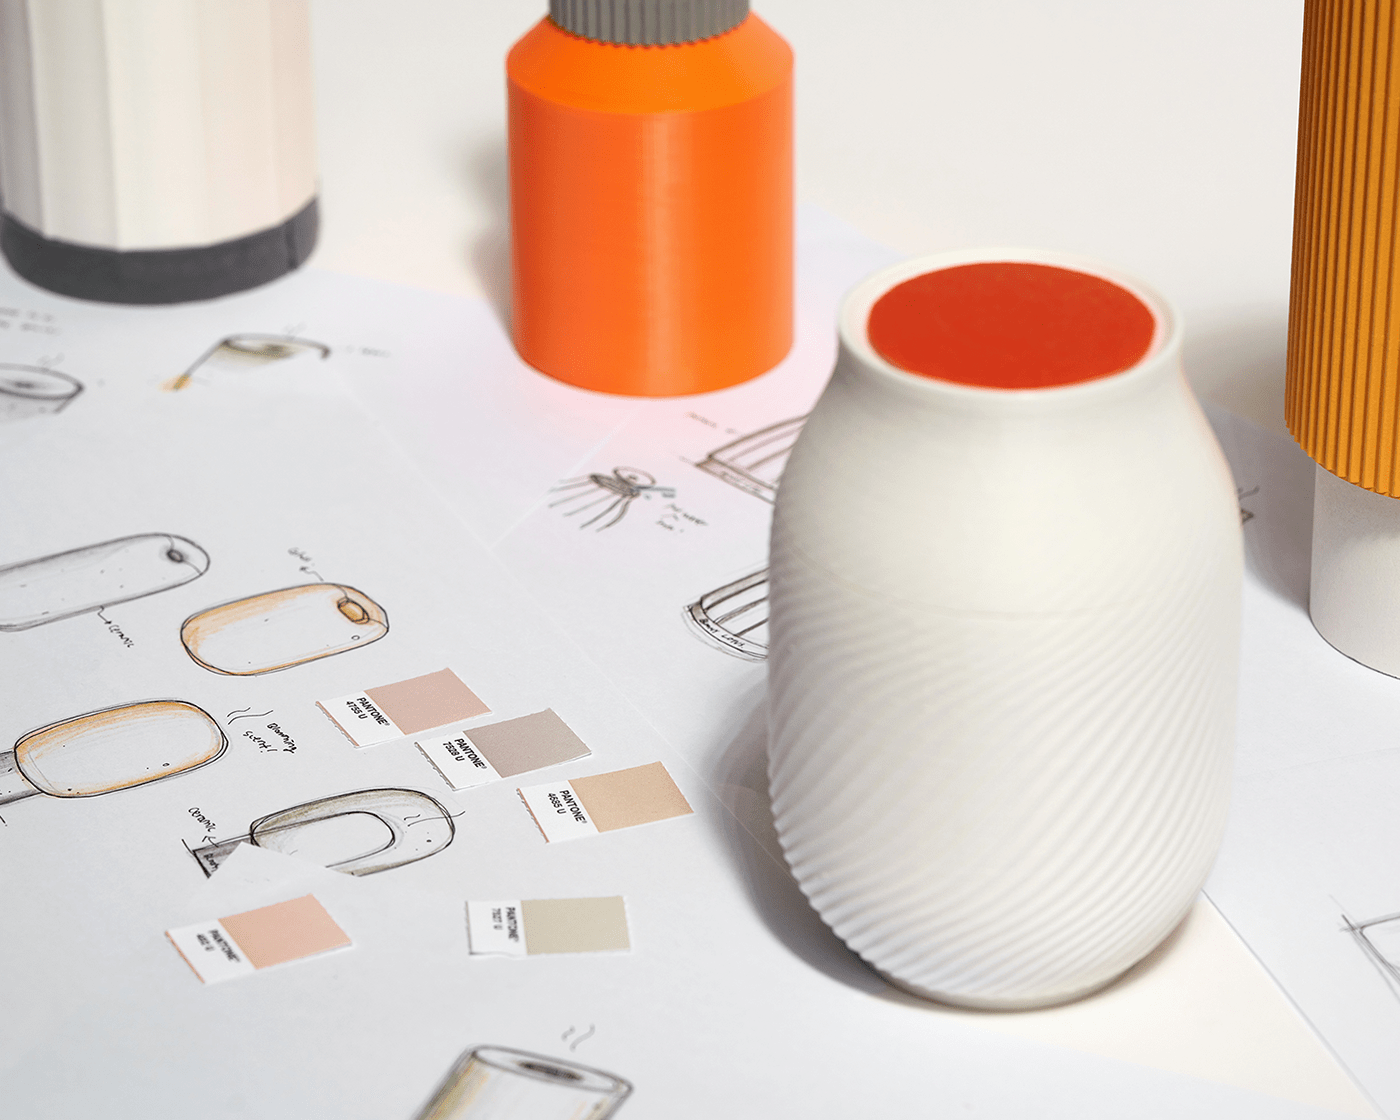 3D craft diffuser foundfounded industrial design  product product design  산업디자인 제품디자인 파운드파운디드